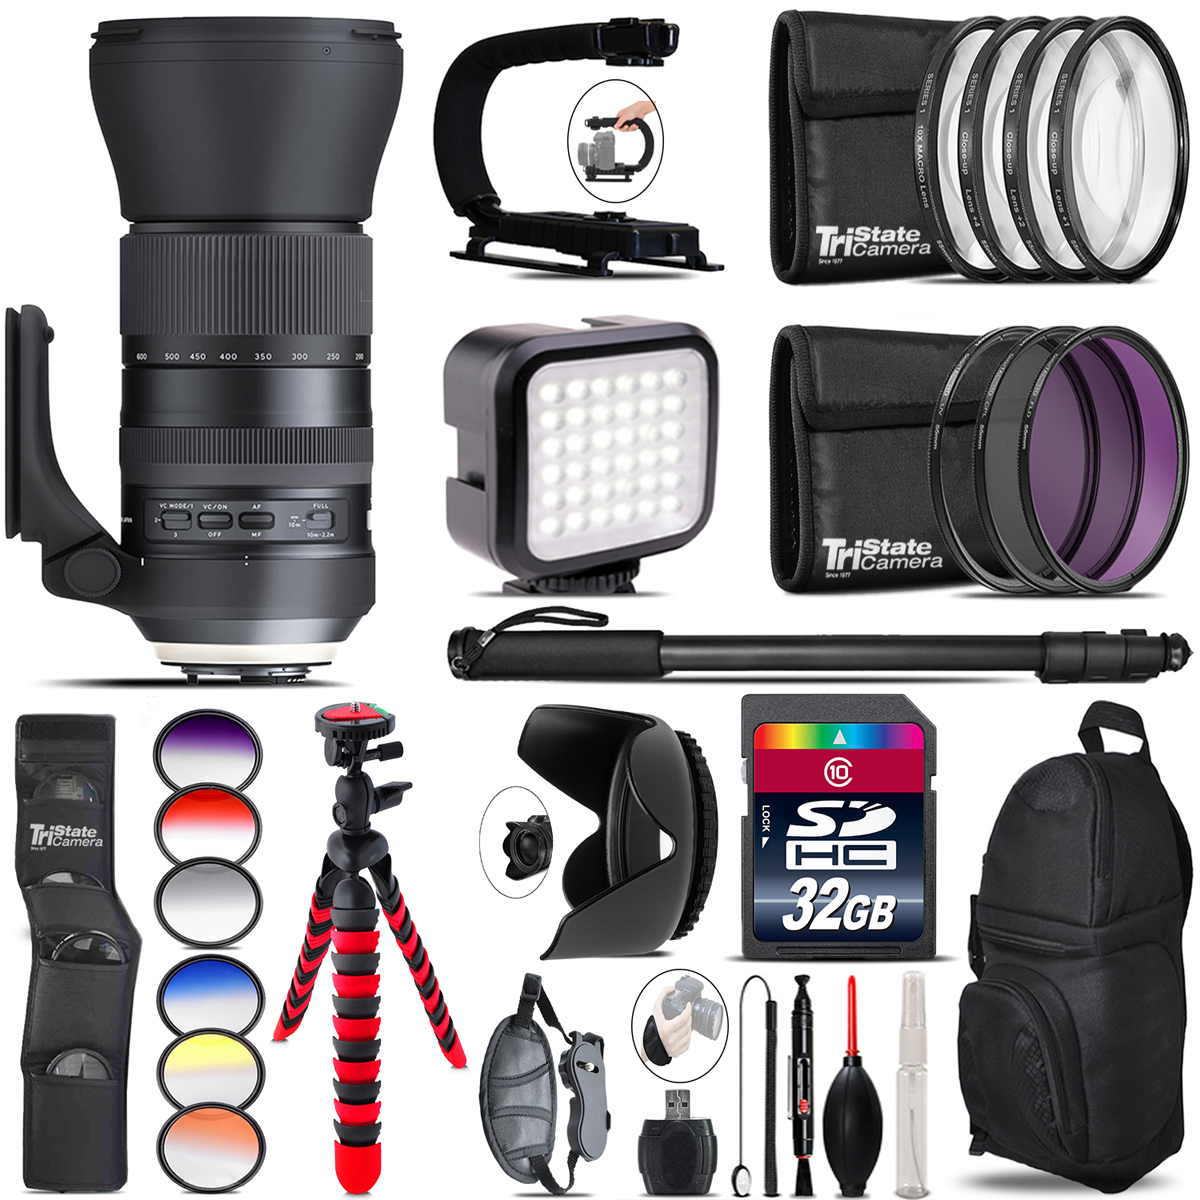 Tamron 150-600mm G2 for Nikon - Video Kit + Color Filter - 32GB Accessory Kit *FREE SHIPPING*